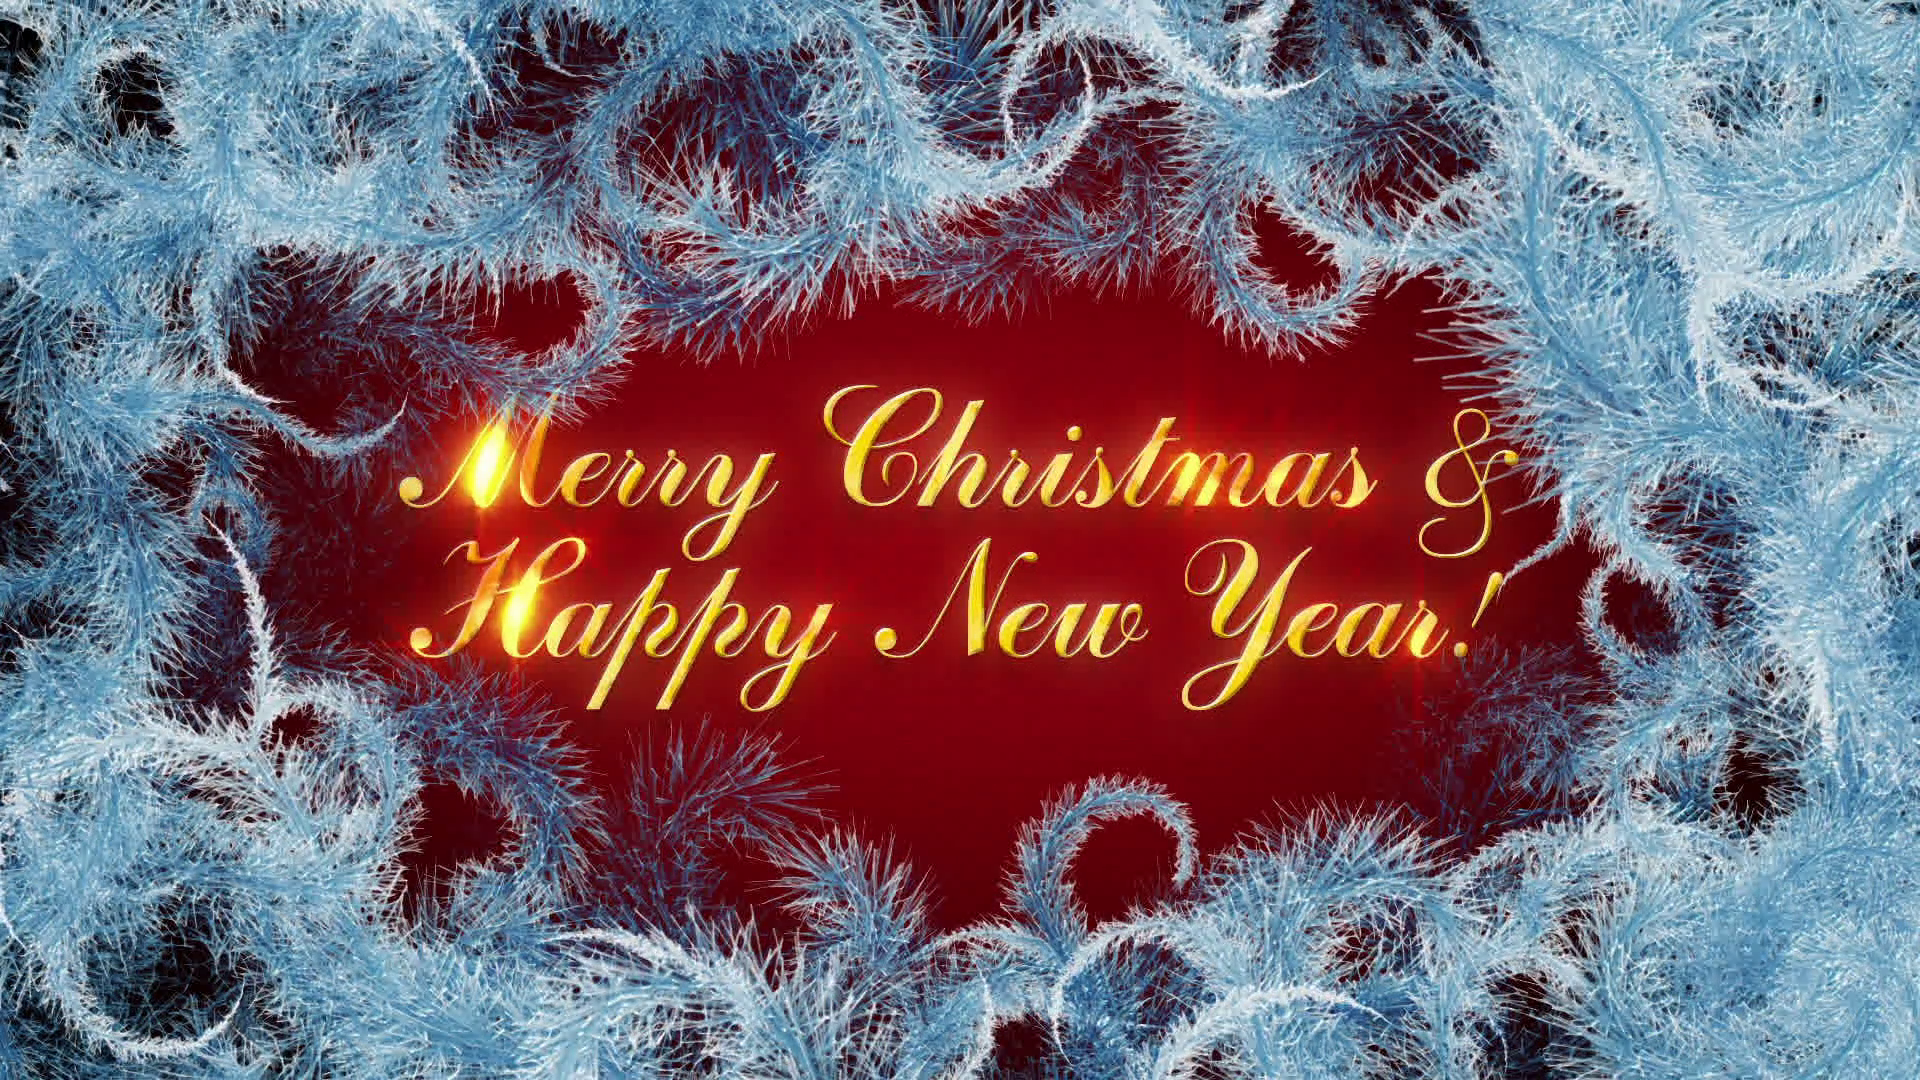 wishing you a very merry christmas happy new year from all of